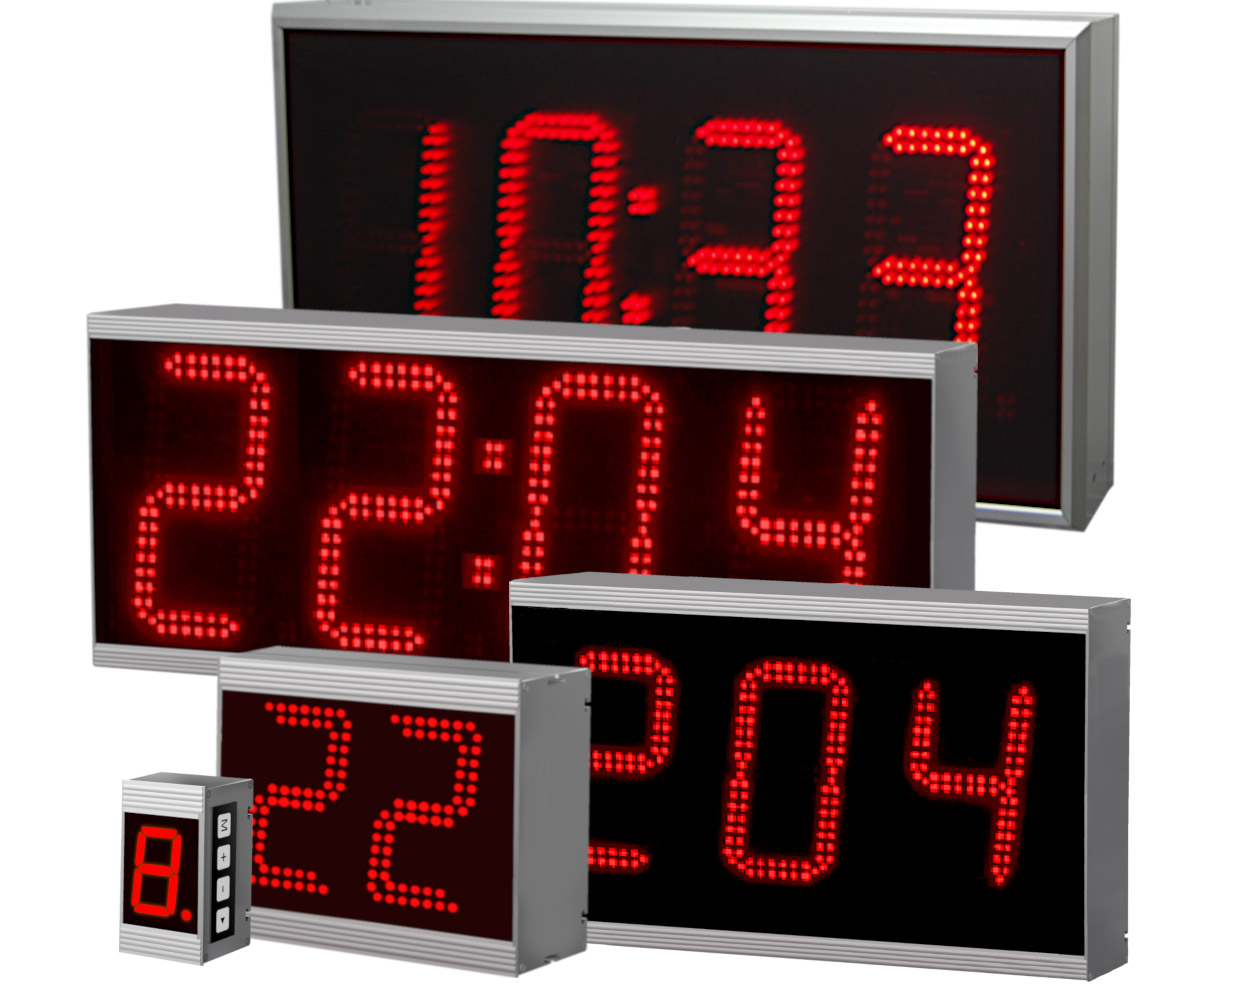 Numeric large displays, number of digits: 1 to 12 digits, dimension symbol, character sizes: 40 mm to 400 mm